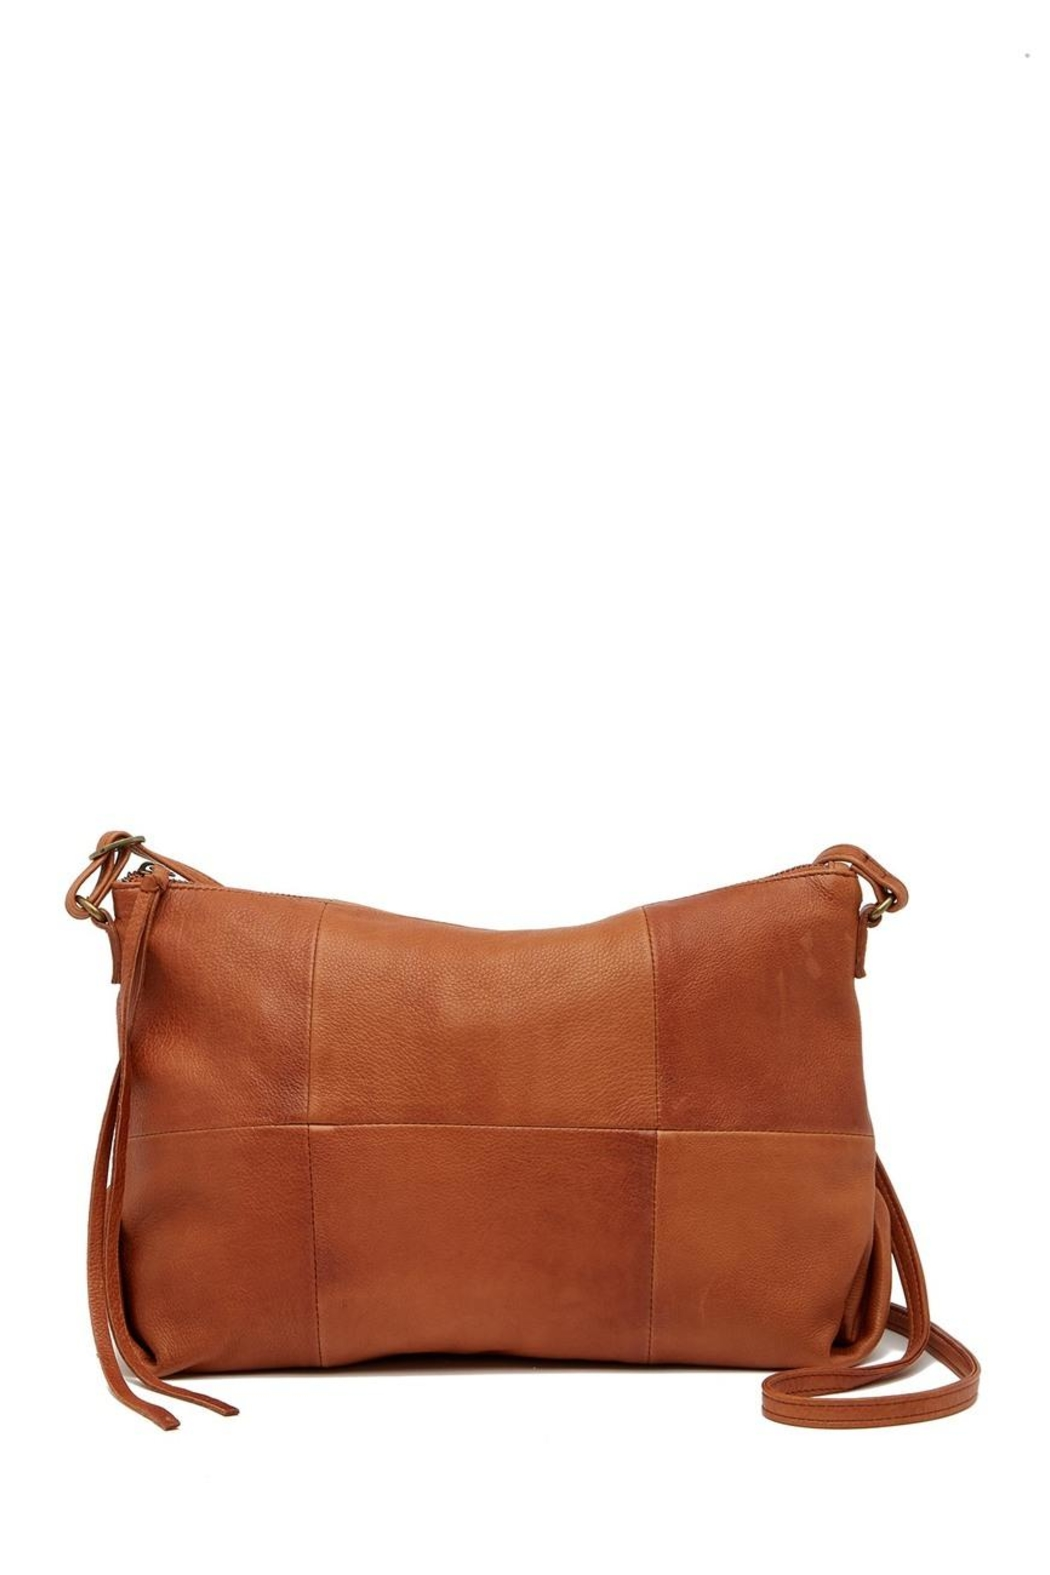 Day & Mood Molly Leather Crossbody - Front Cropped Image